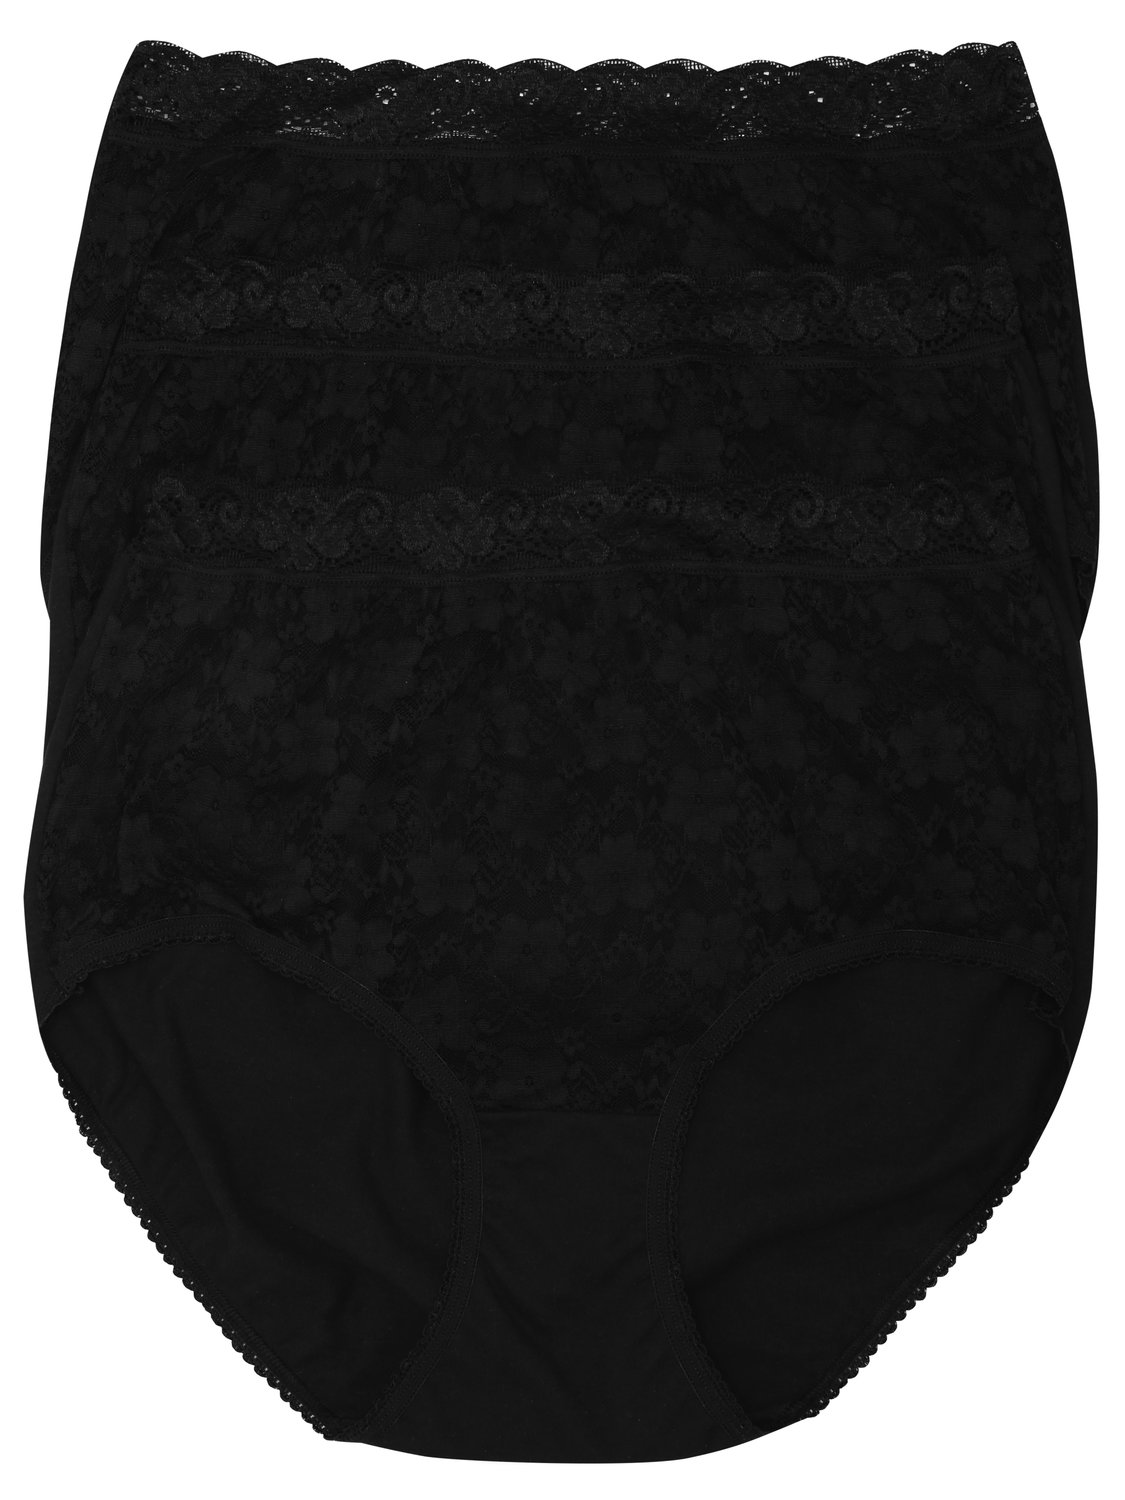 ladies plain classic cotton rich lace trim everyday full brief - 3 pack multipack  - black